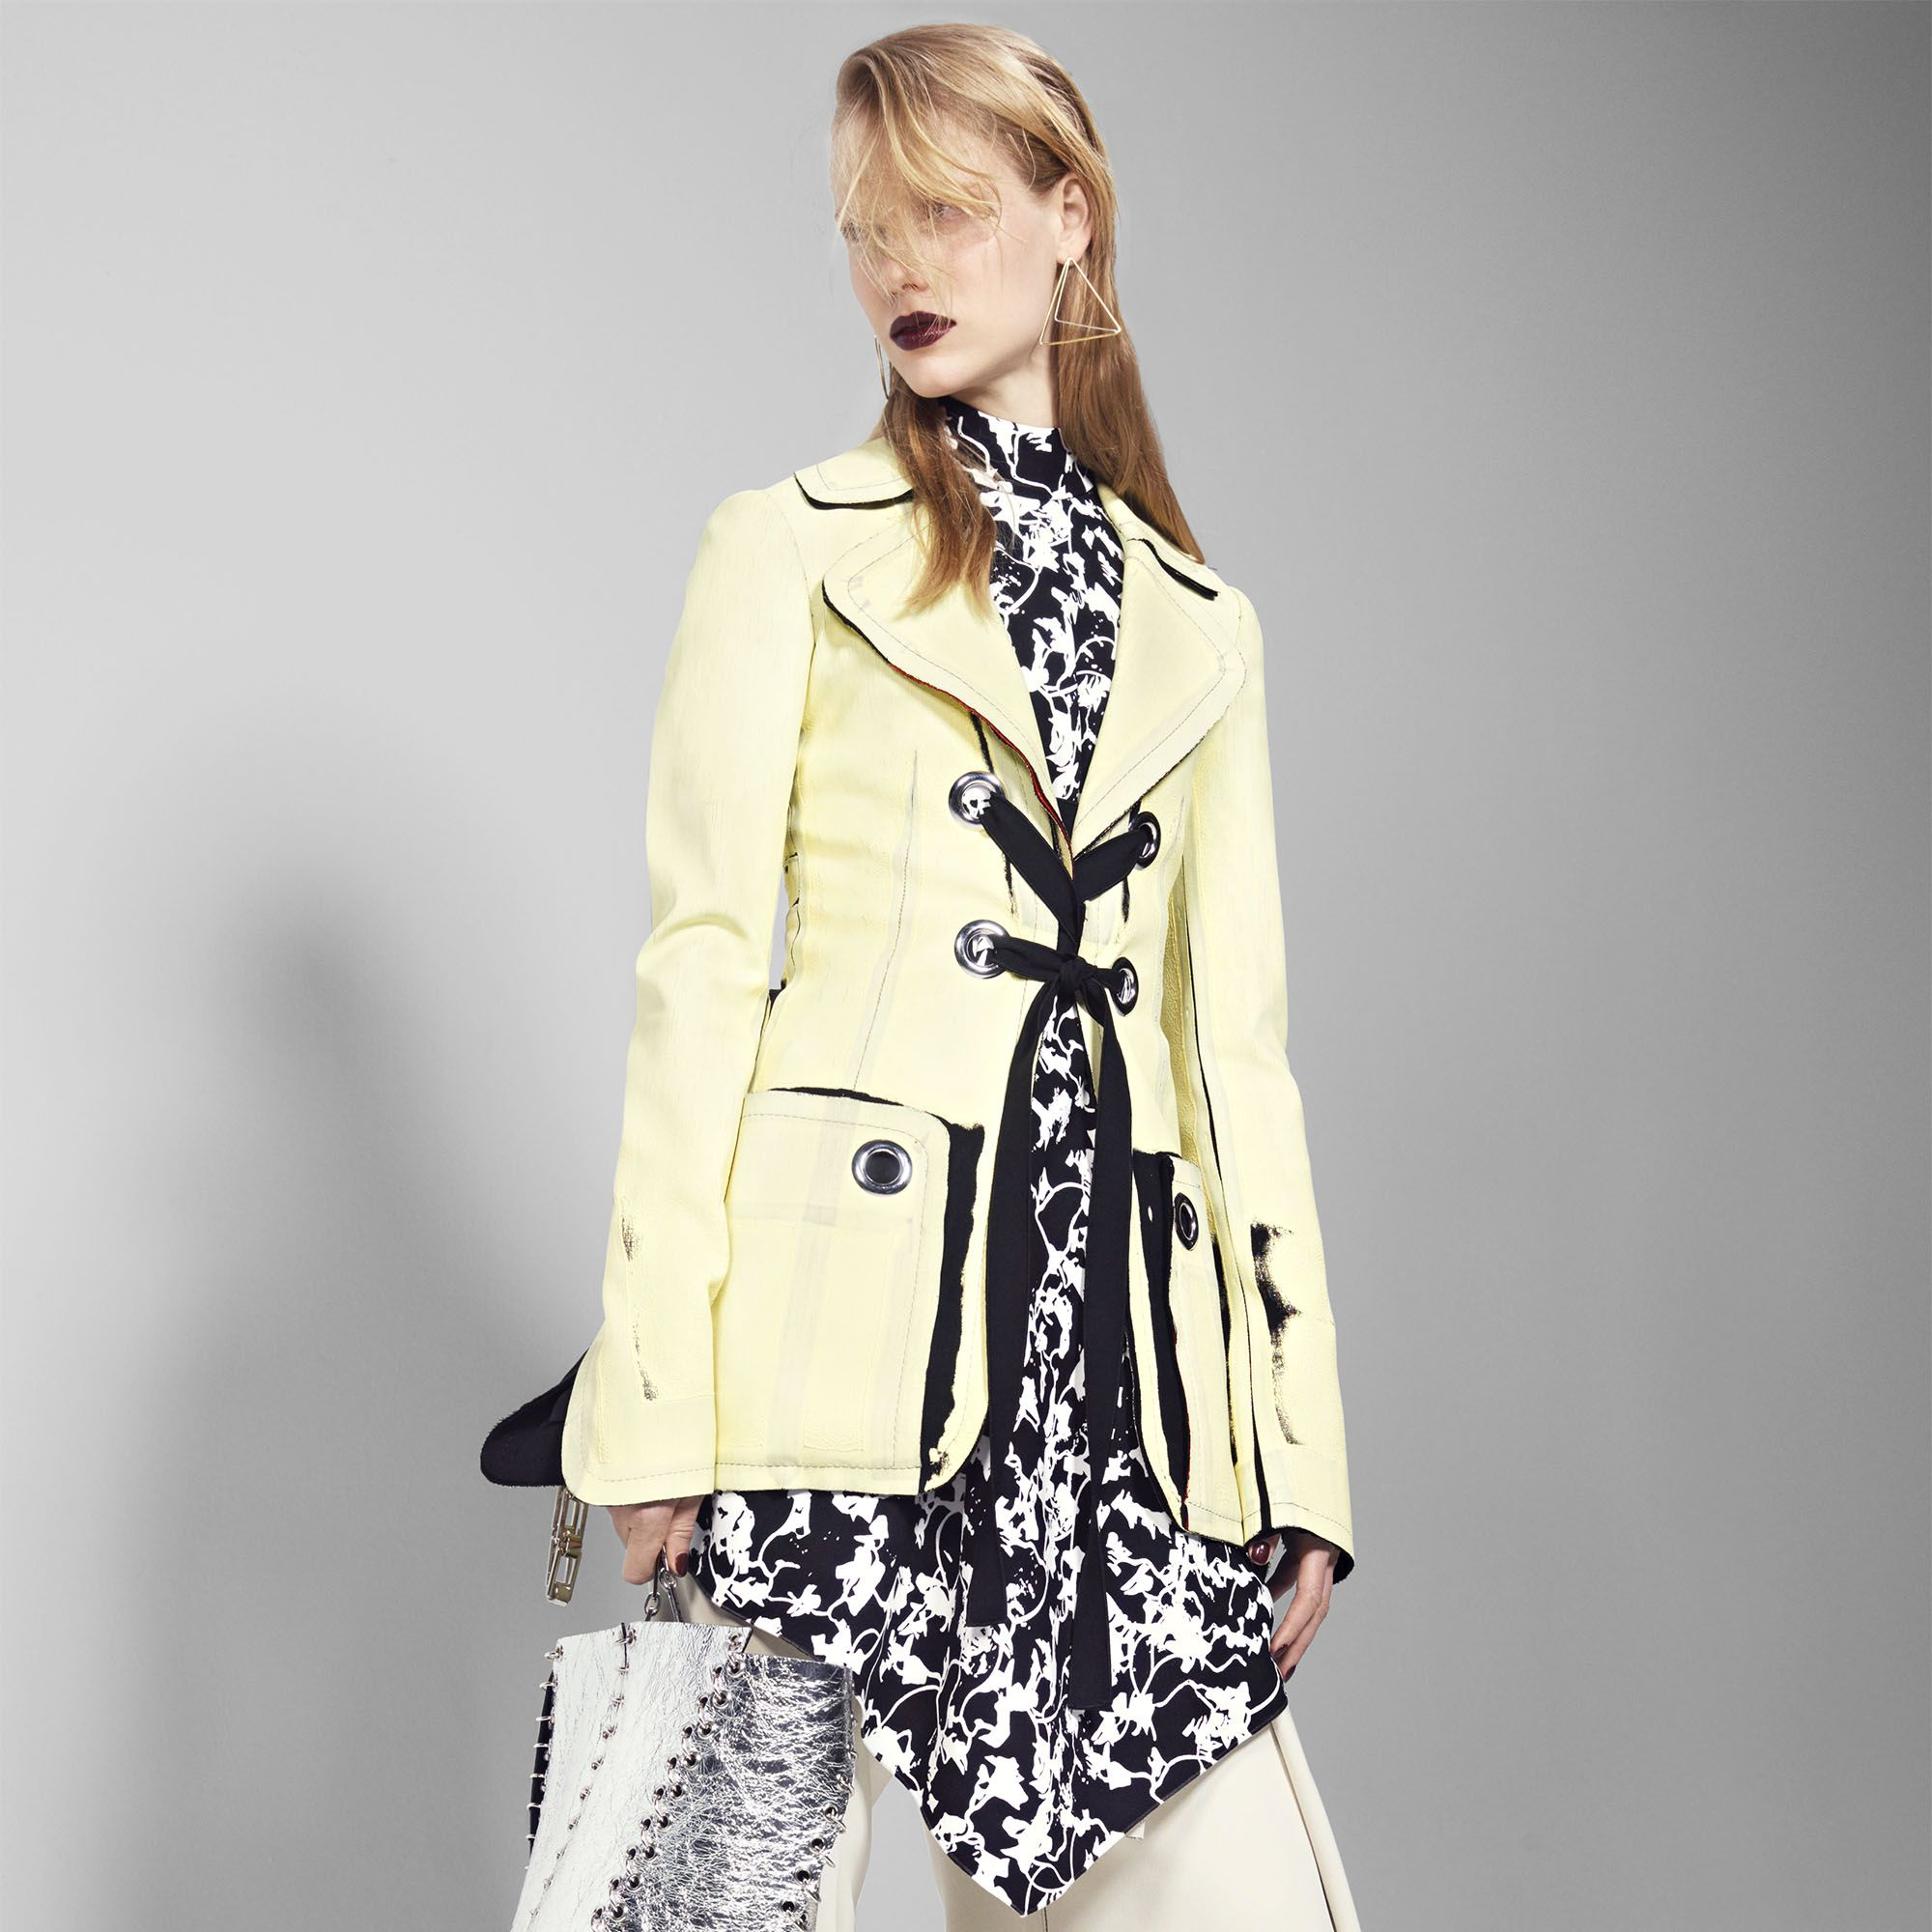 """<p><strong>Proenza Schouler</strong> jacket, $4,500, top, $1,185, pants, $1,250, bag, $1,960, and shoes, $980 212-420-7300&#x3B; <strong>Anndra Neen </strong>earrings, $75-$85, <a href=""""http://shop.tenover6.com/"""" target=""""_blank"""">tenover6.com</a>.</p>"""